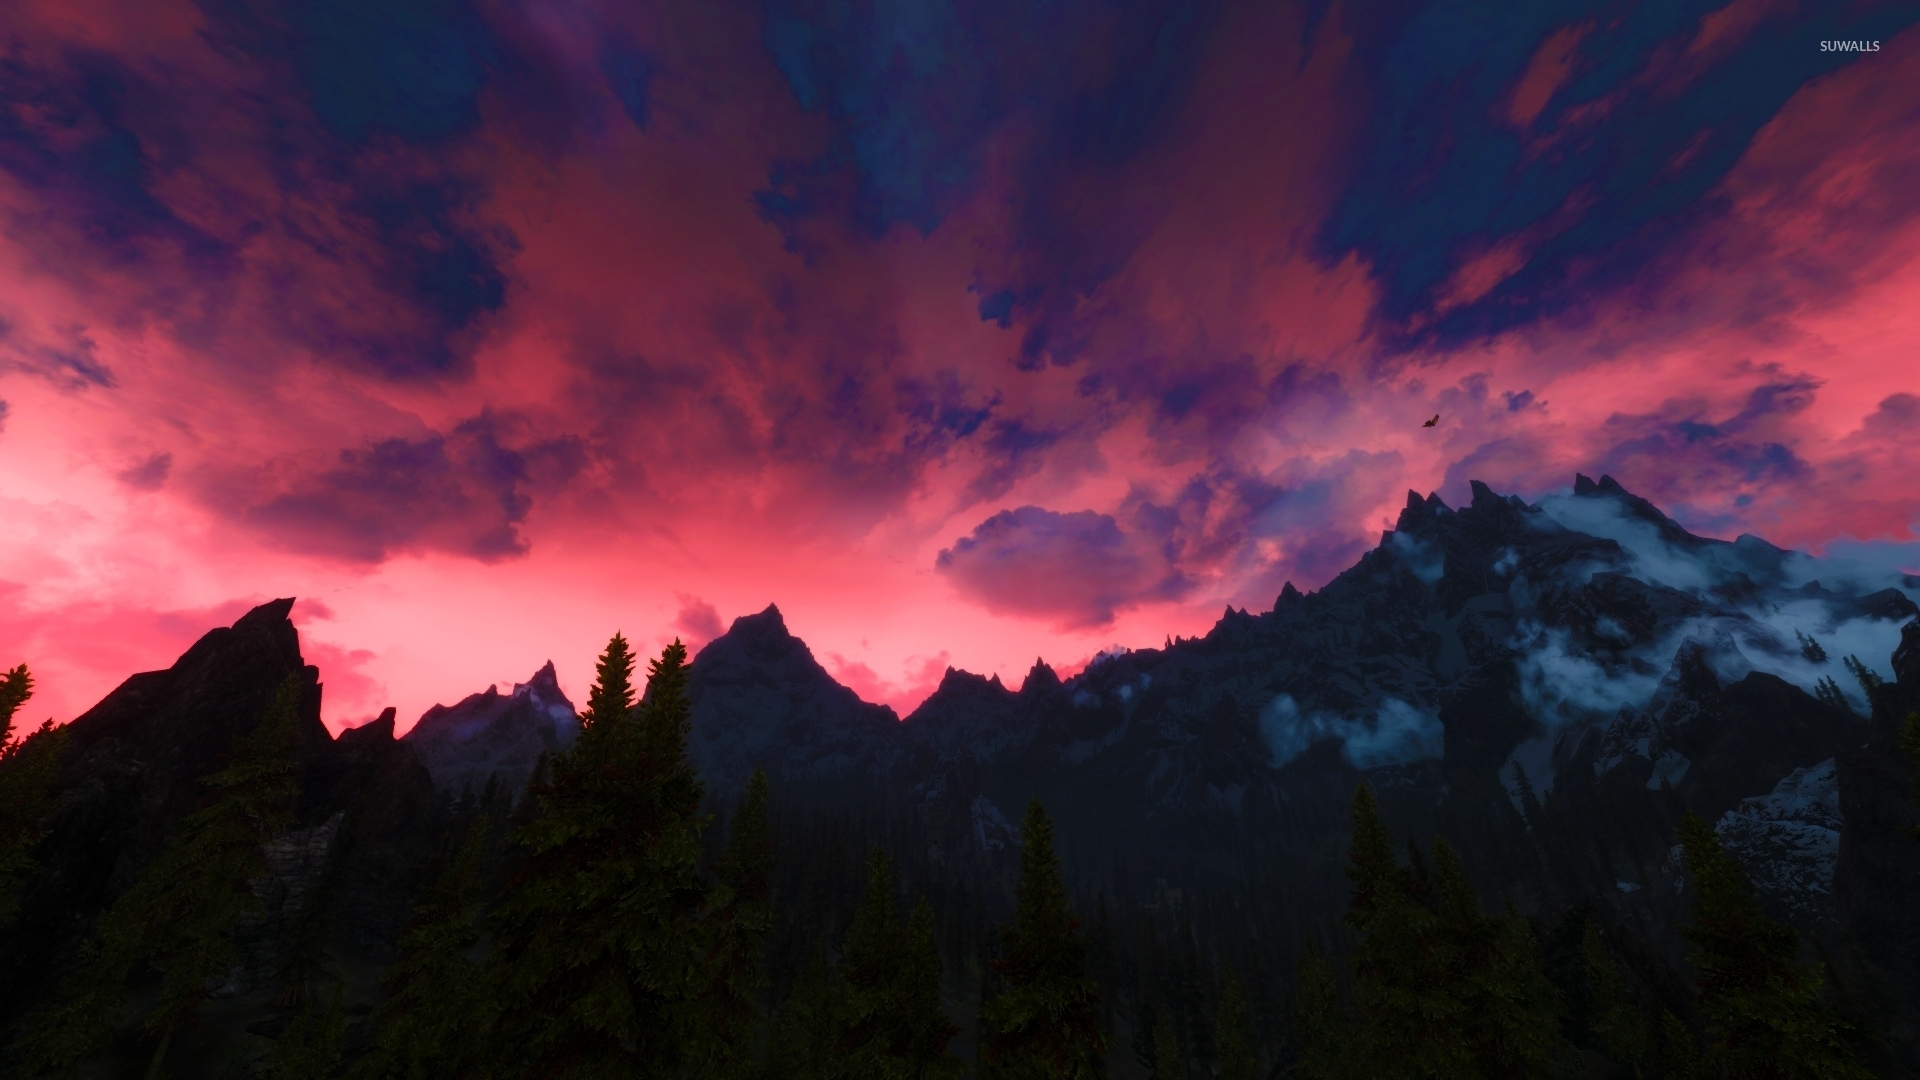 Red Sky In The Elder Scrolls V Skyrim Wallpaper